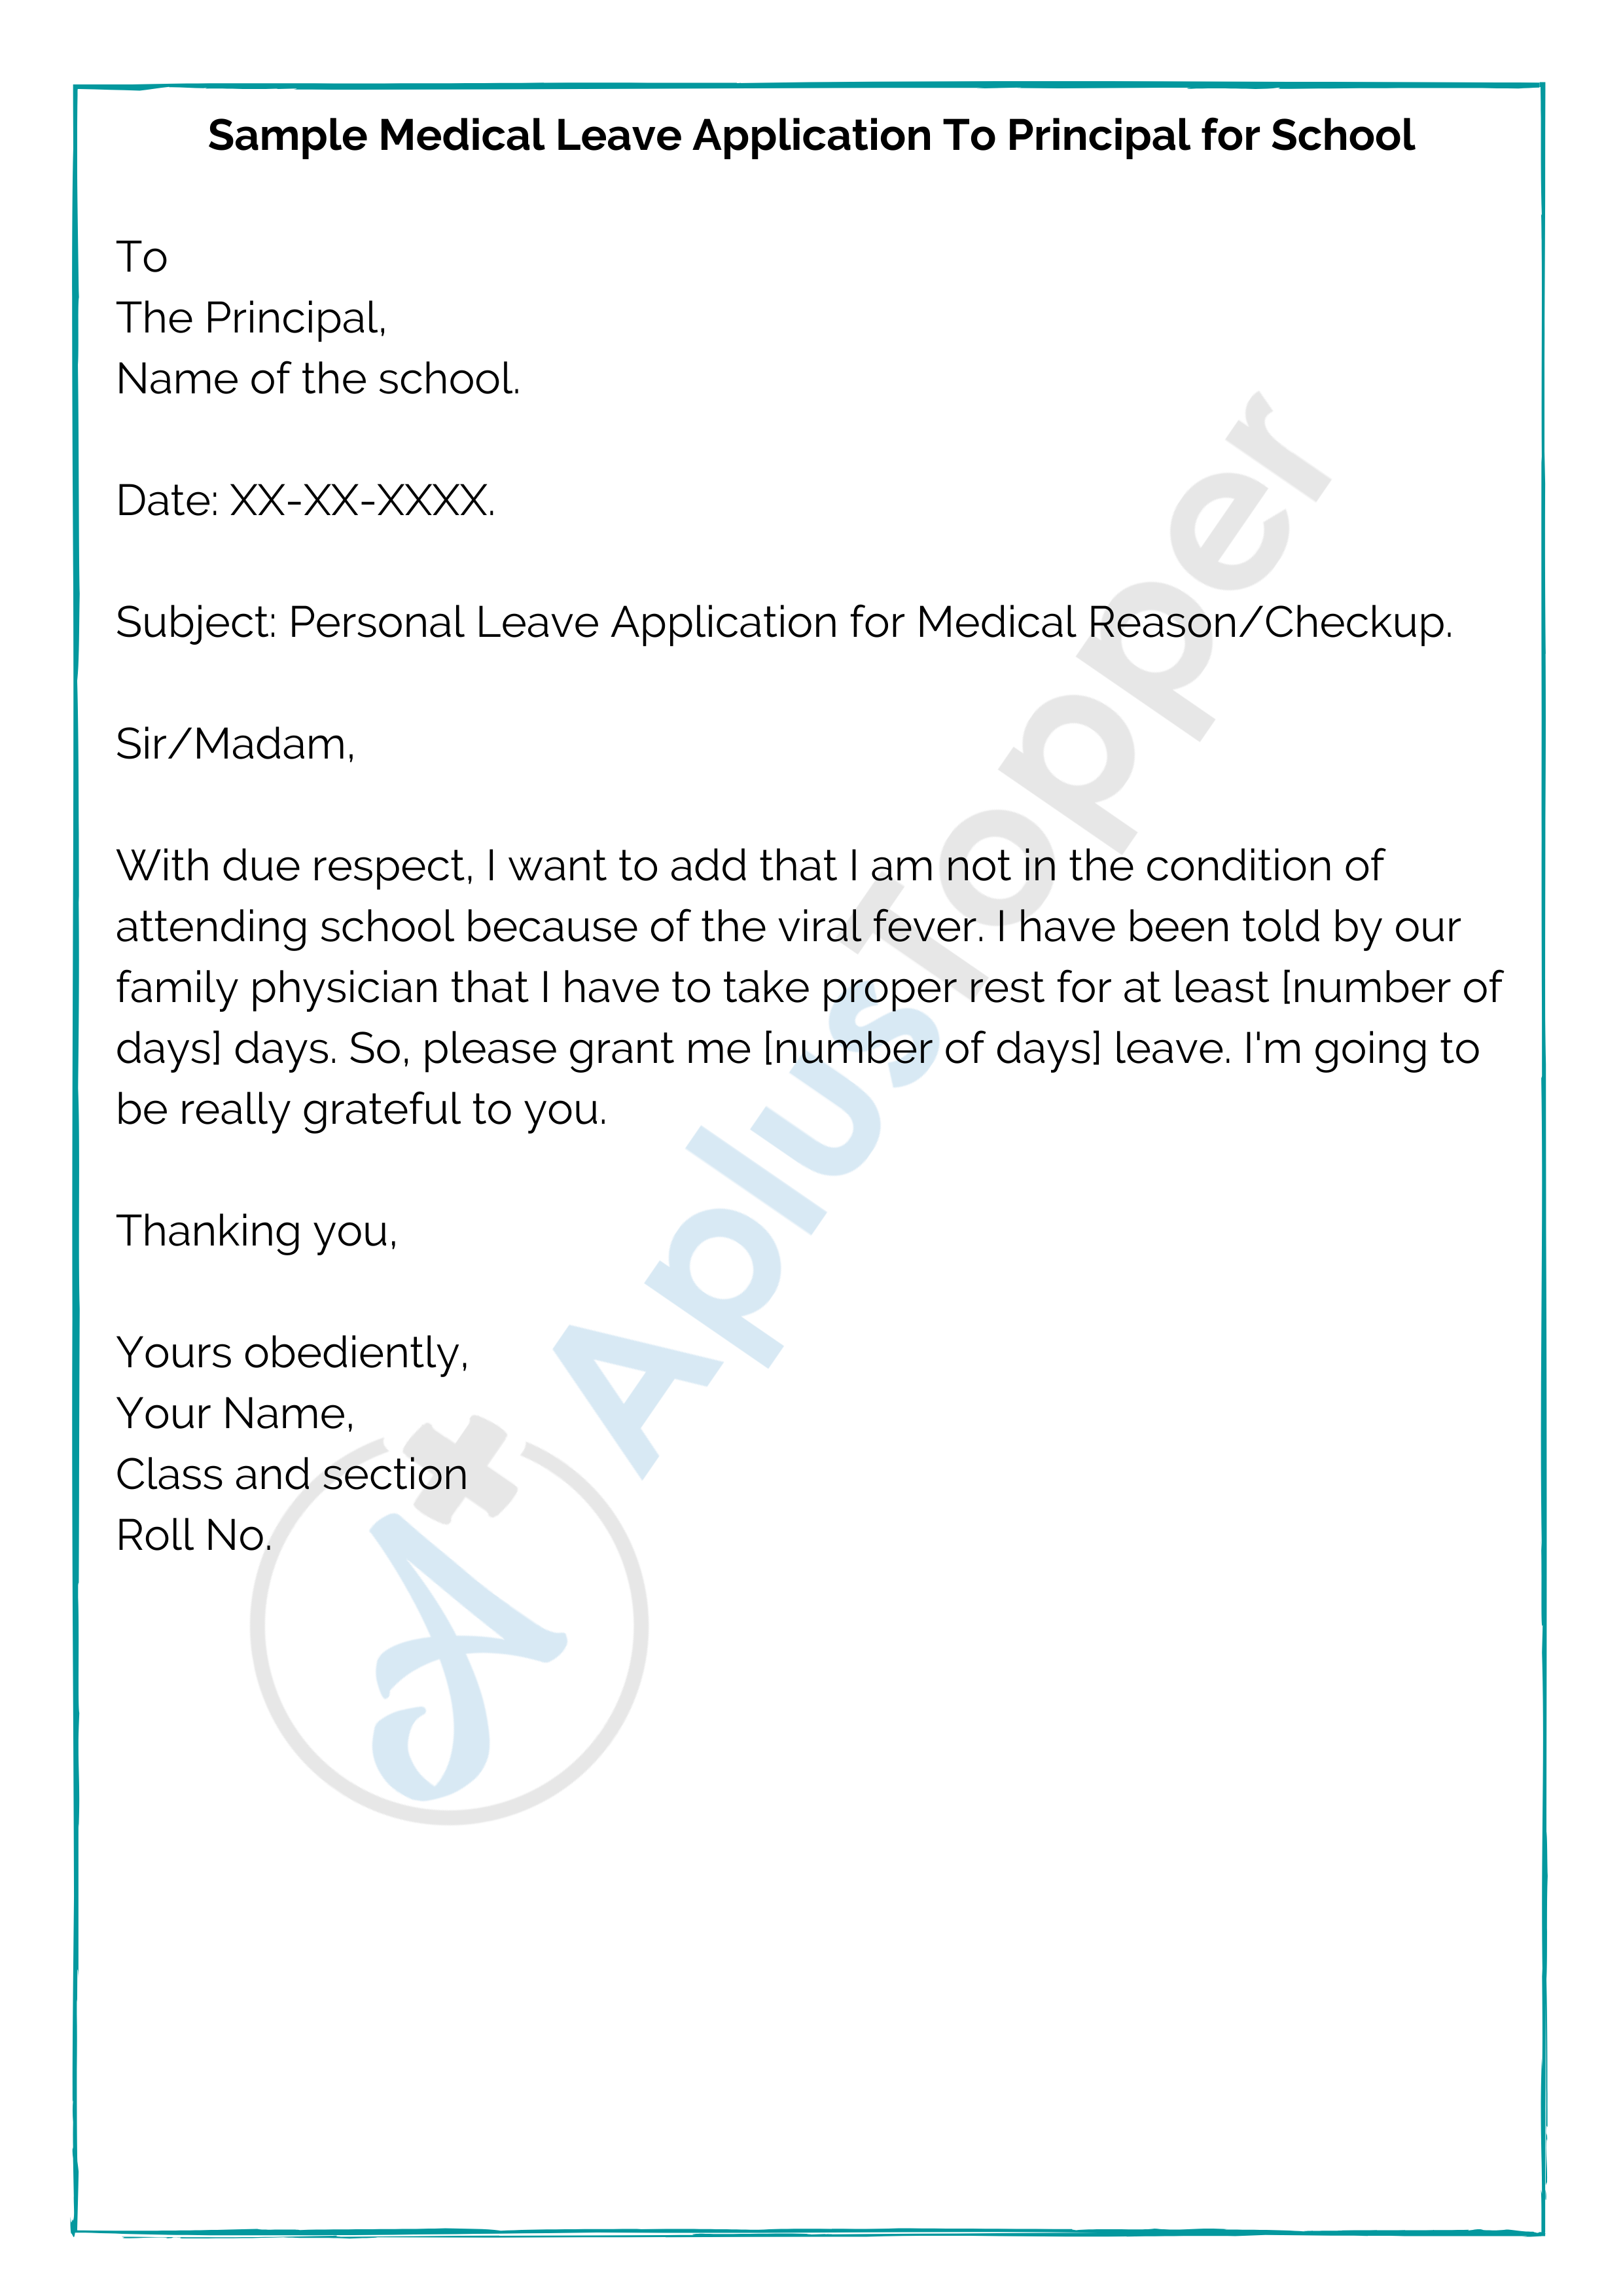 Sample Medical Leave Application To Principal for School